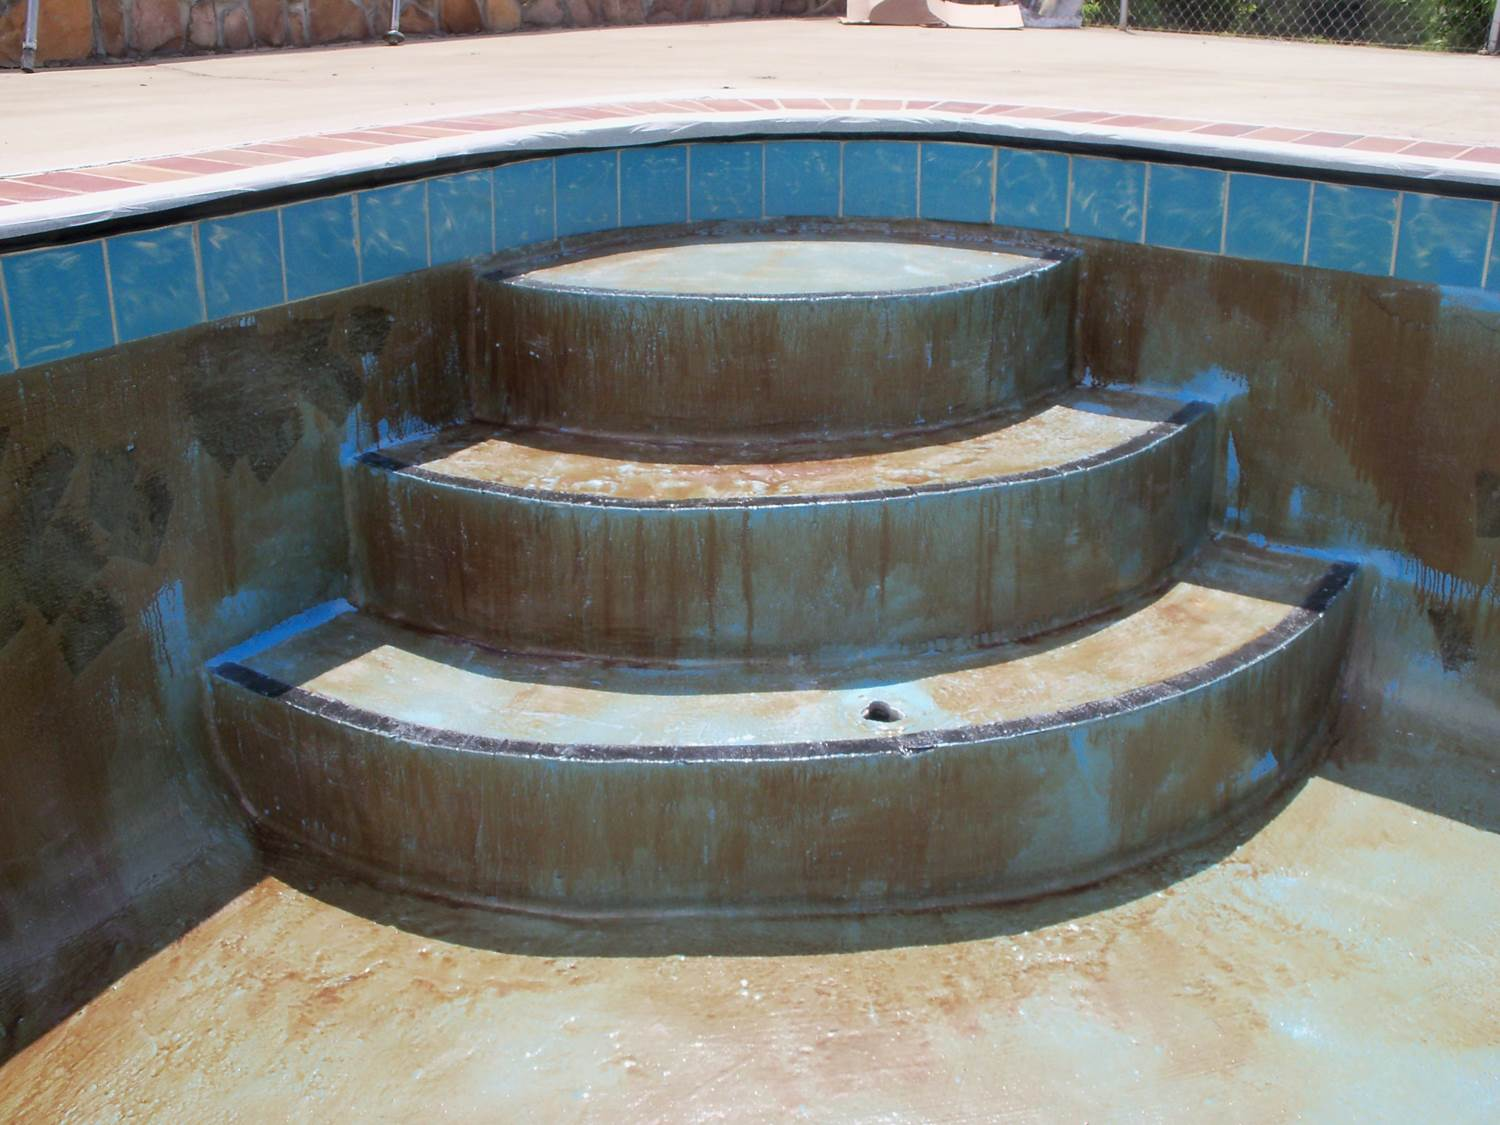 swimming pool liner before Granitex™ coating